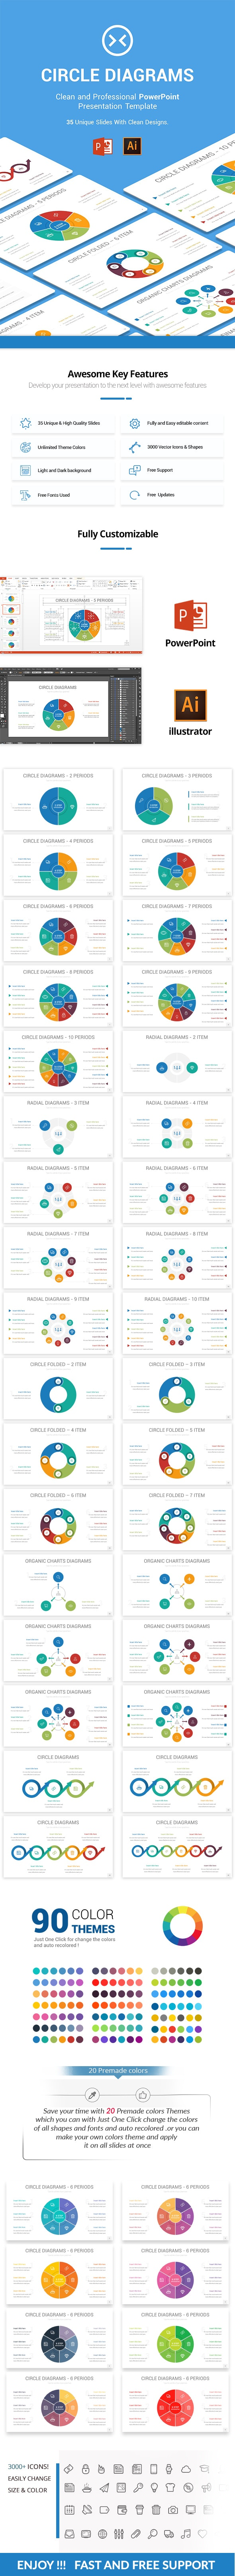 Circle Diagrams PowerPoint, Illustrator Template - Business PowerPoint Templates